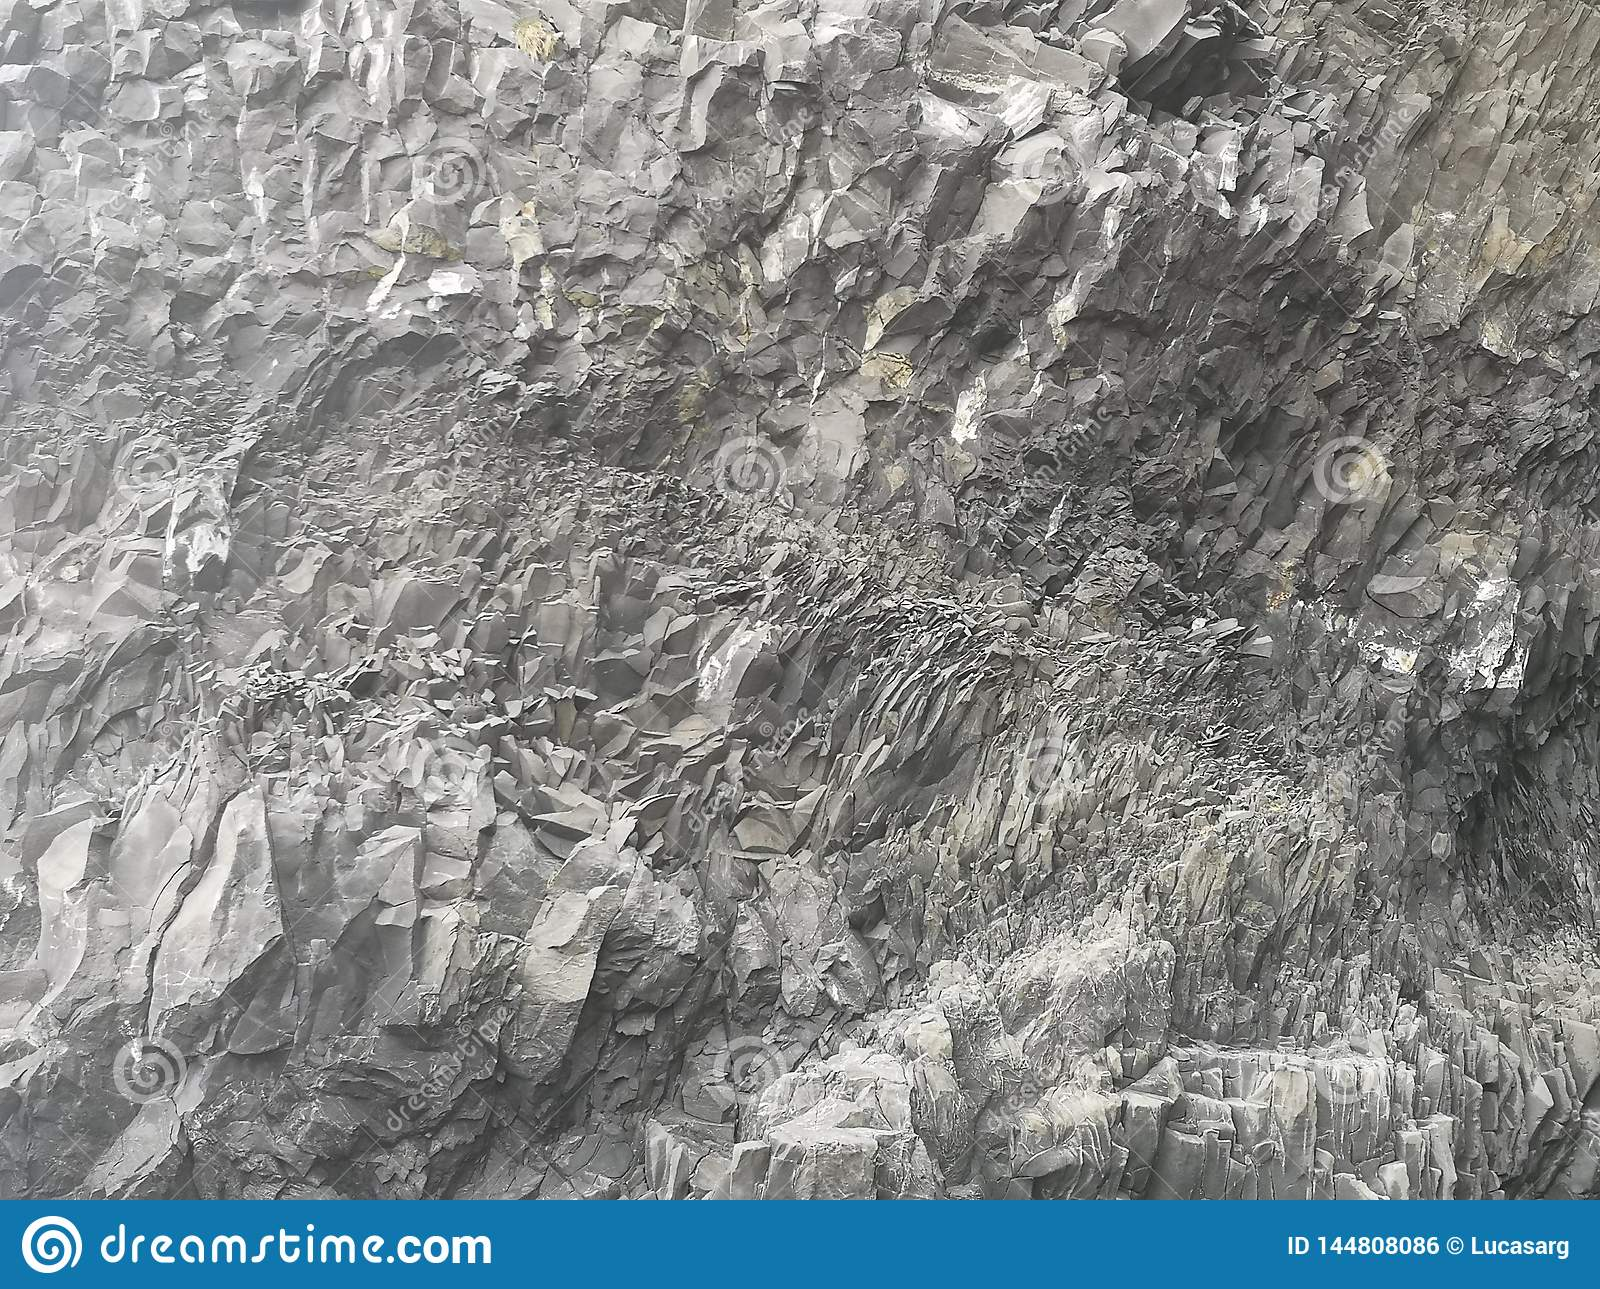 Natural Basalt Wall In Rocks Texture, Iceland. Stock Photo - Image of colours, artistic: 144808086